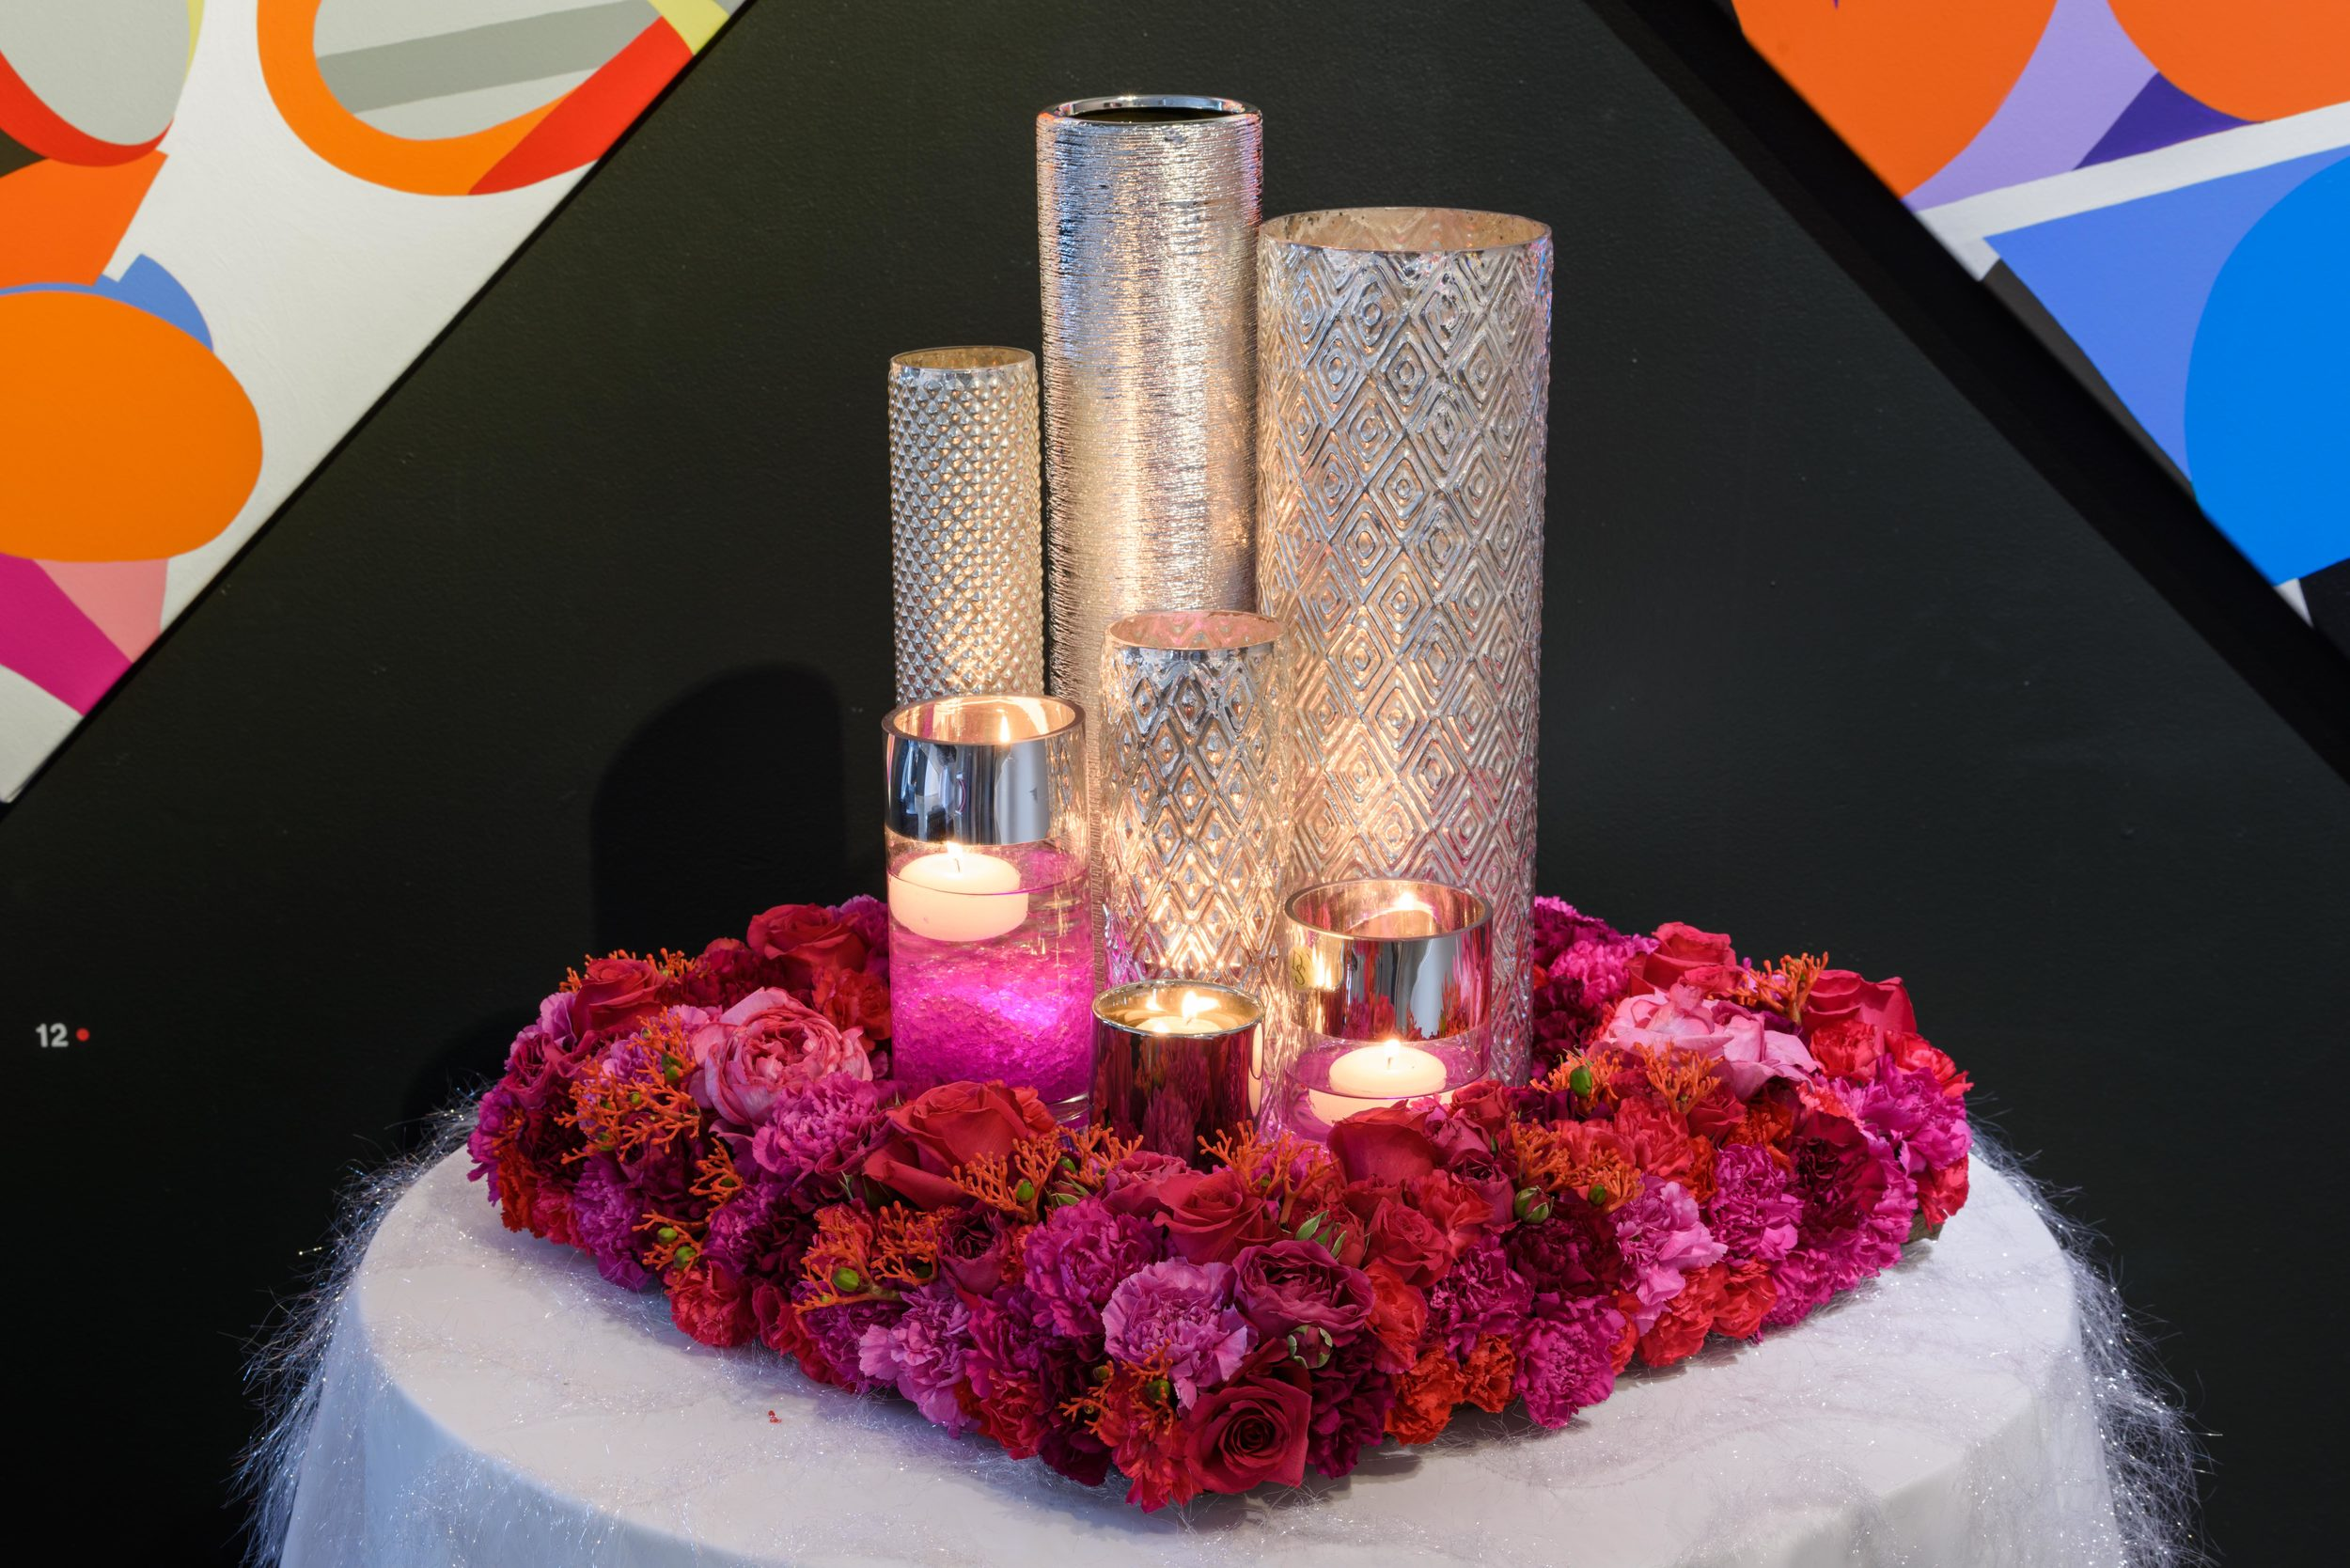 Entry focal point table with floral and candles